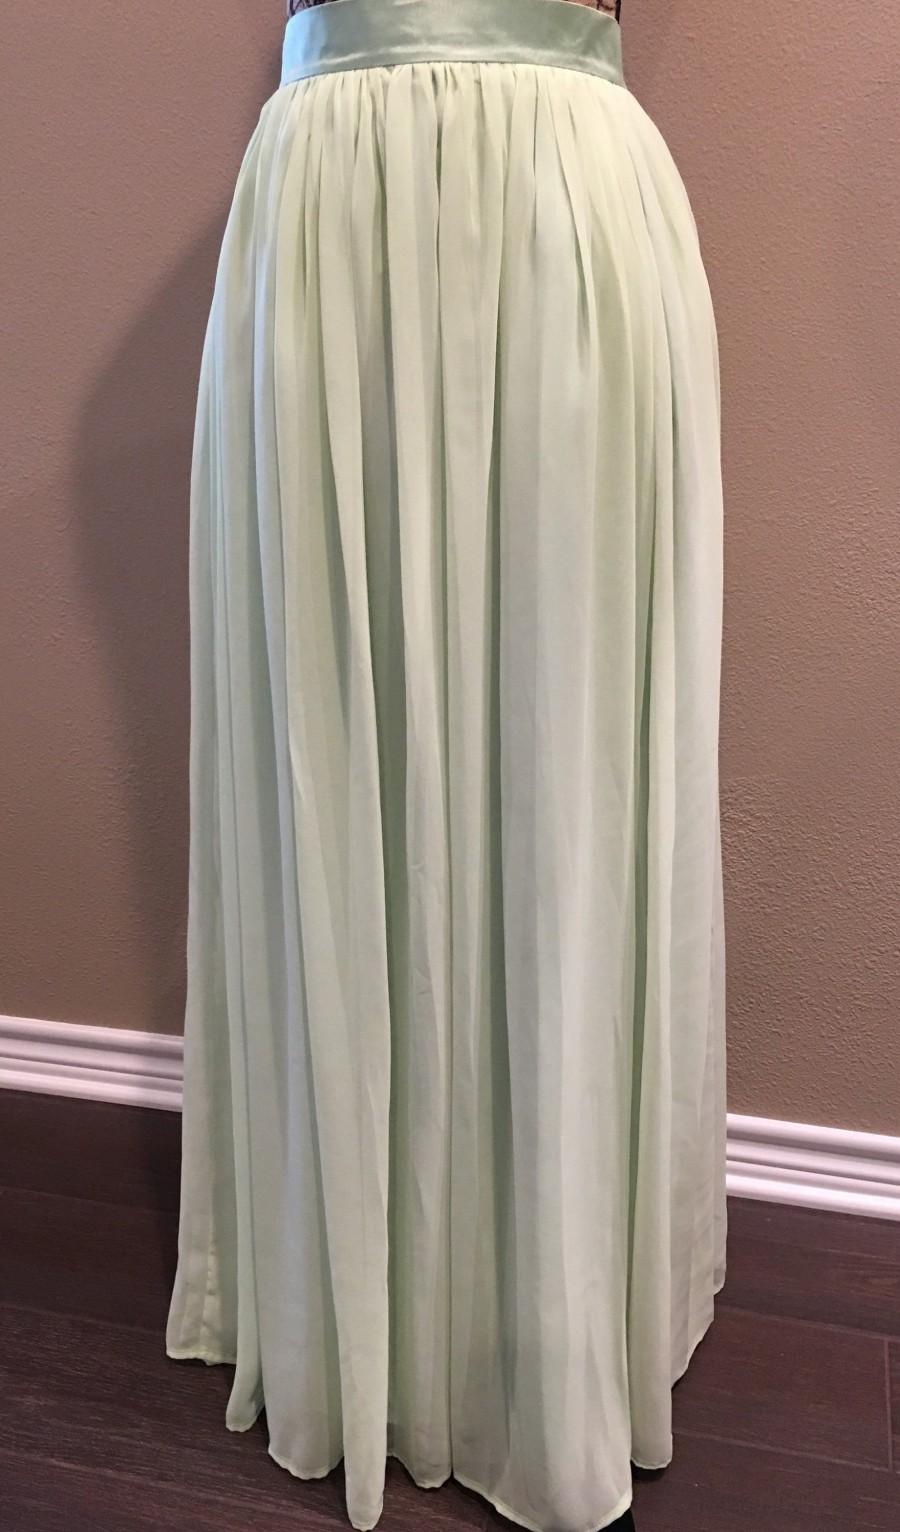 Свадьба - Sage Green Skirt Bridesmaid Dress Chiffon Maxi Skirt Long Wedding Skirt Womens Custom Skirt Bridesmaids Skirt Engagement Skirt Maxi Skirt